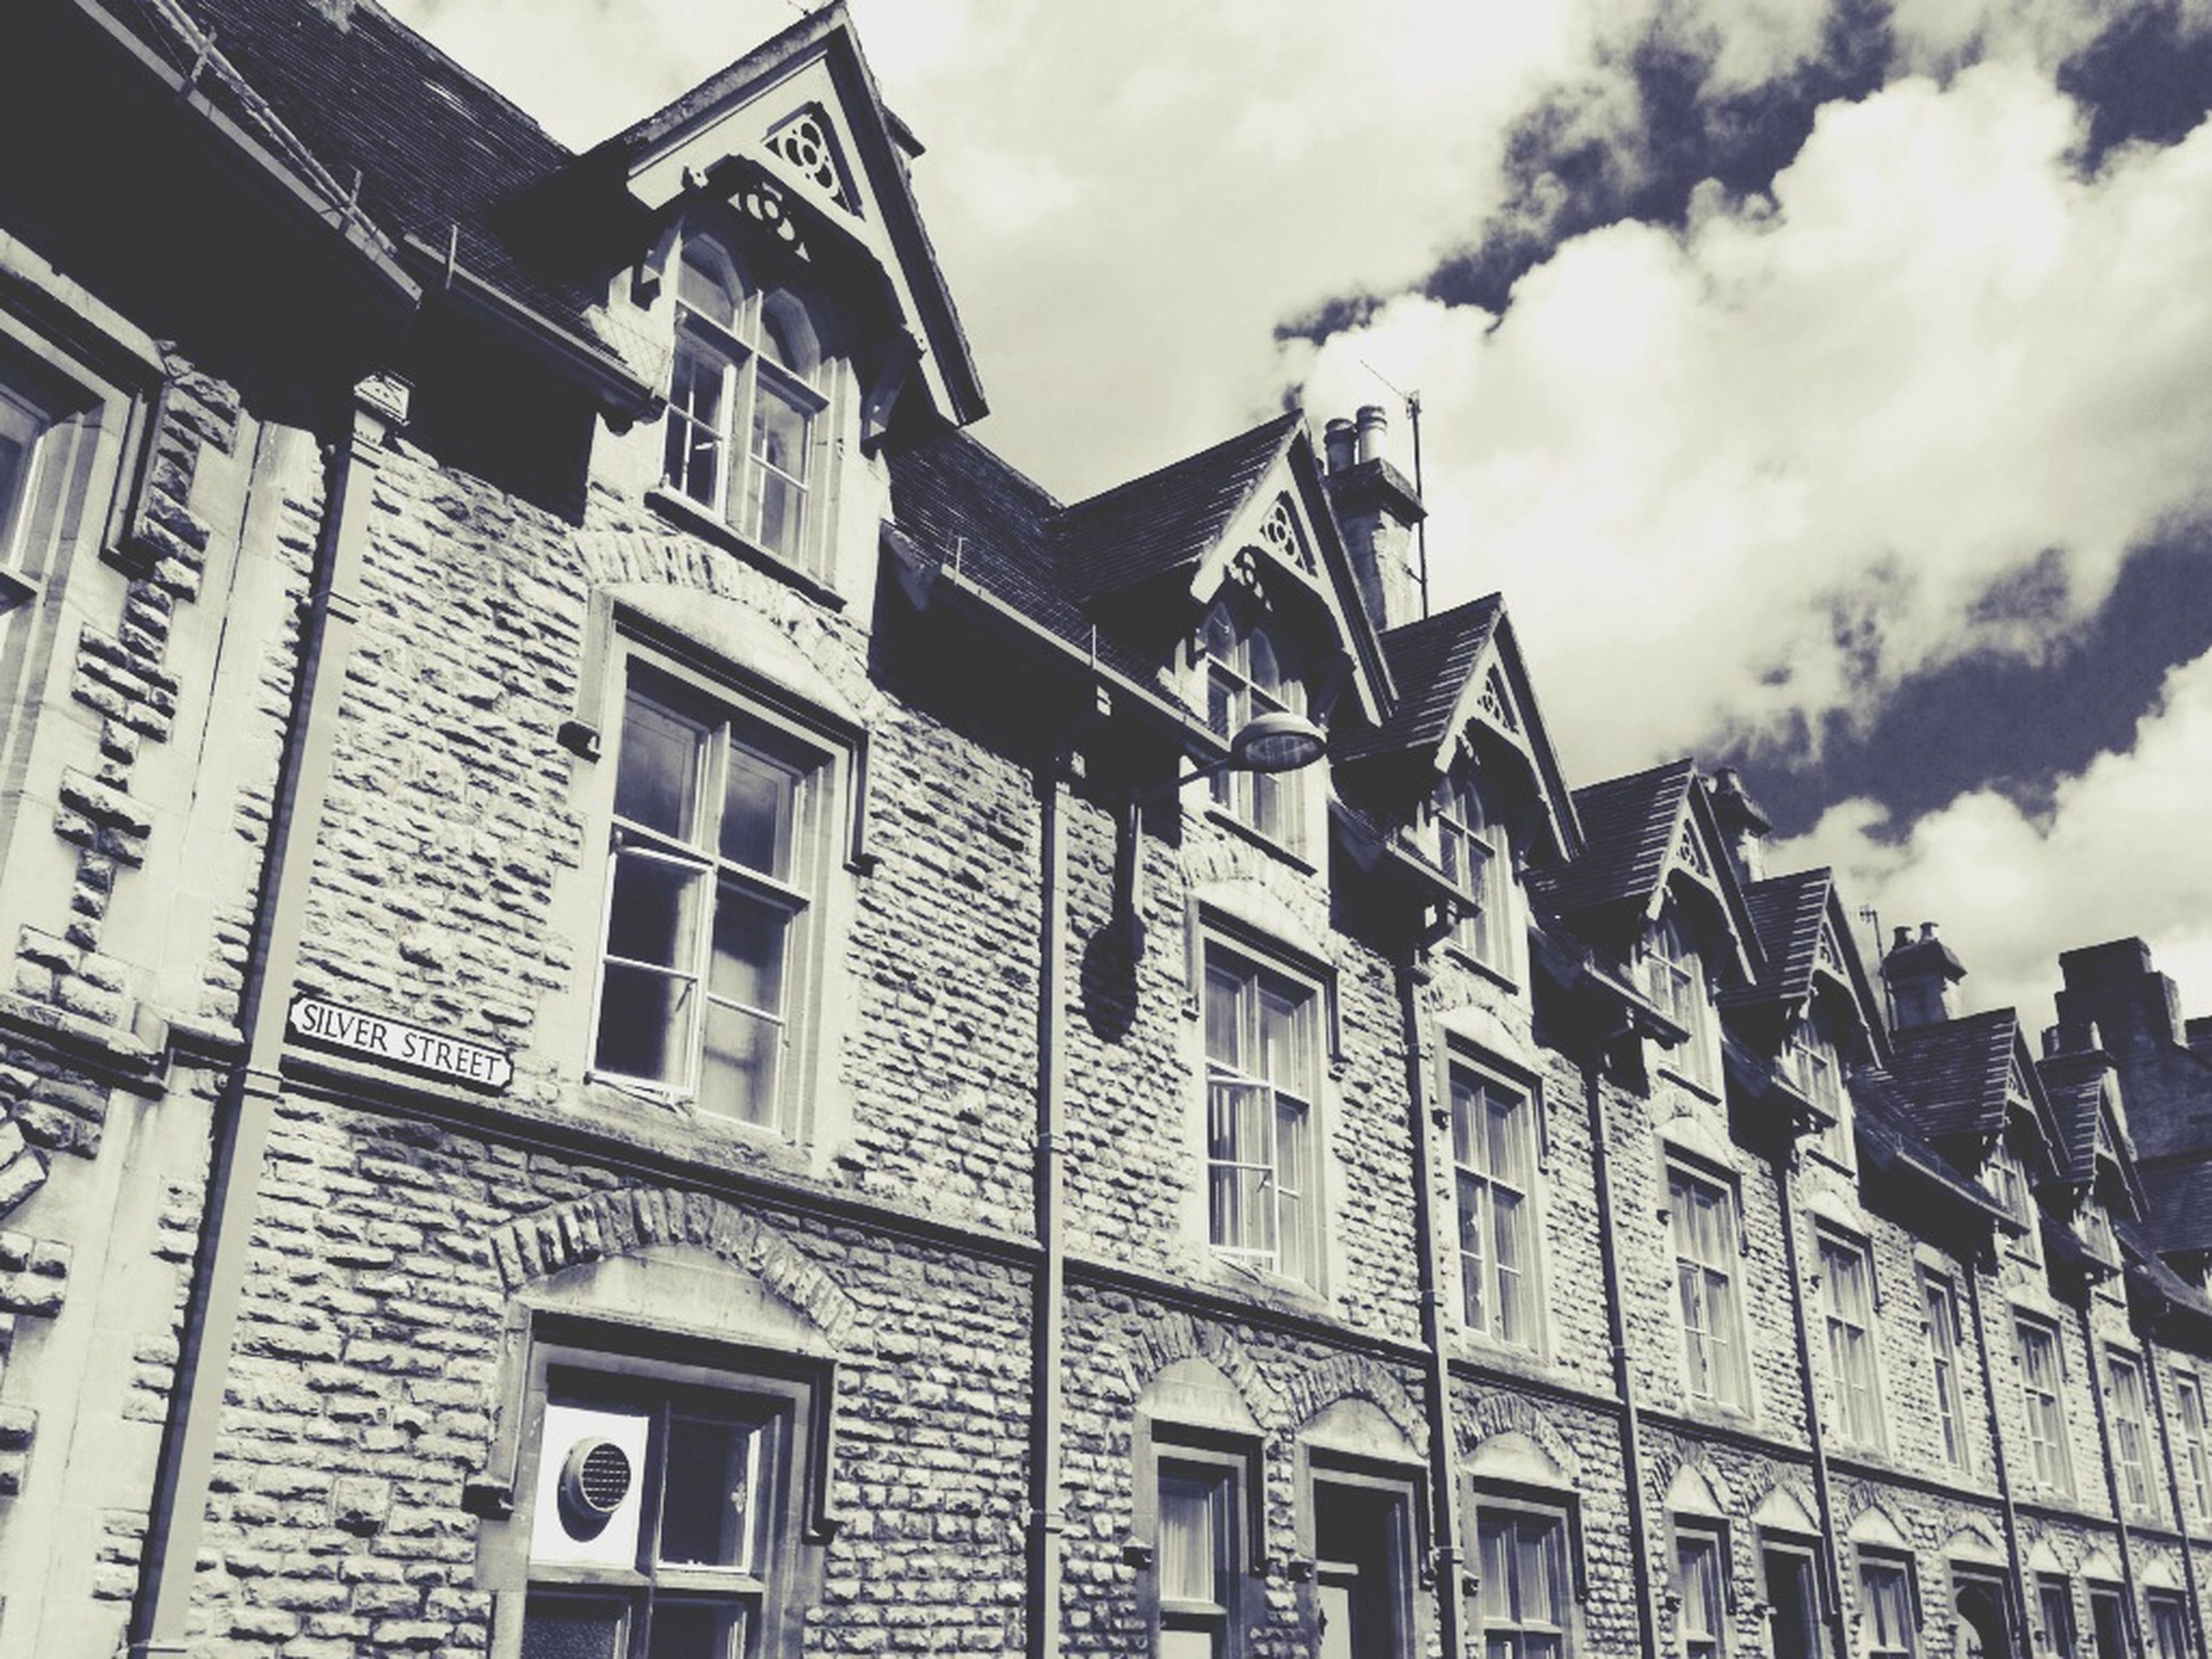 architecture, building exterior, built structure, low angle view, sky, residential building, building, residential structure, window, cloud - sky, cloud, outdoors, house, city, day, old, no people, exterior, cloudy, high section